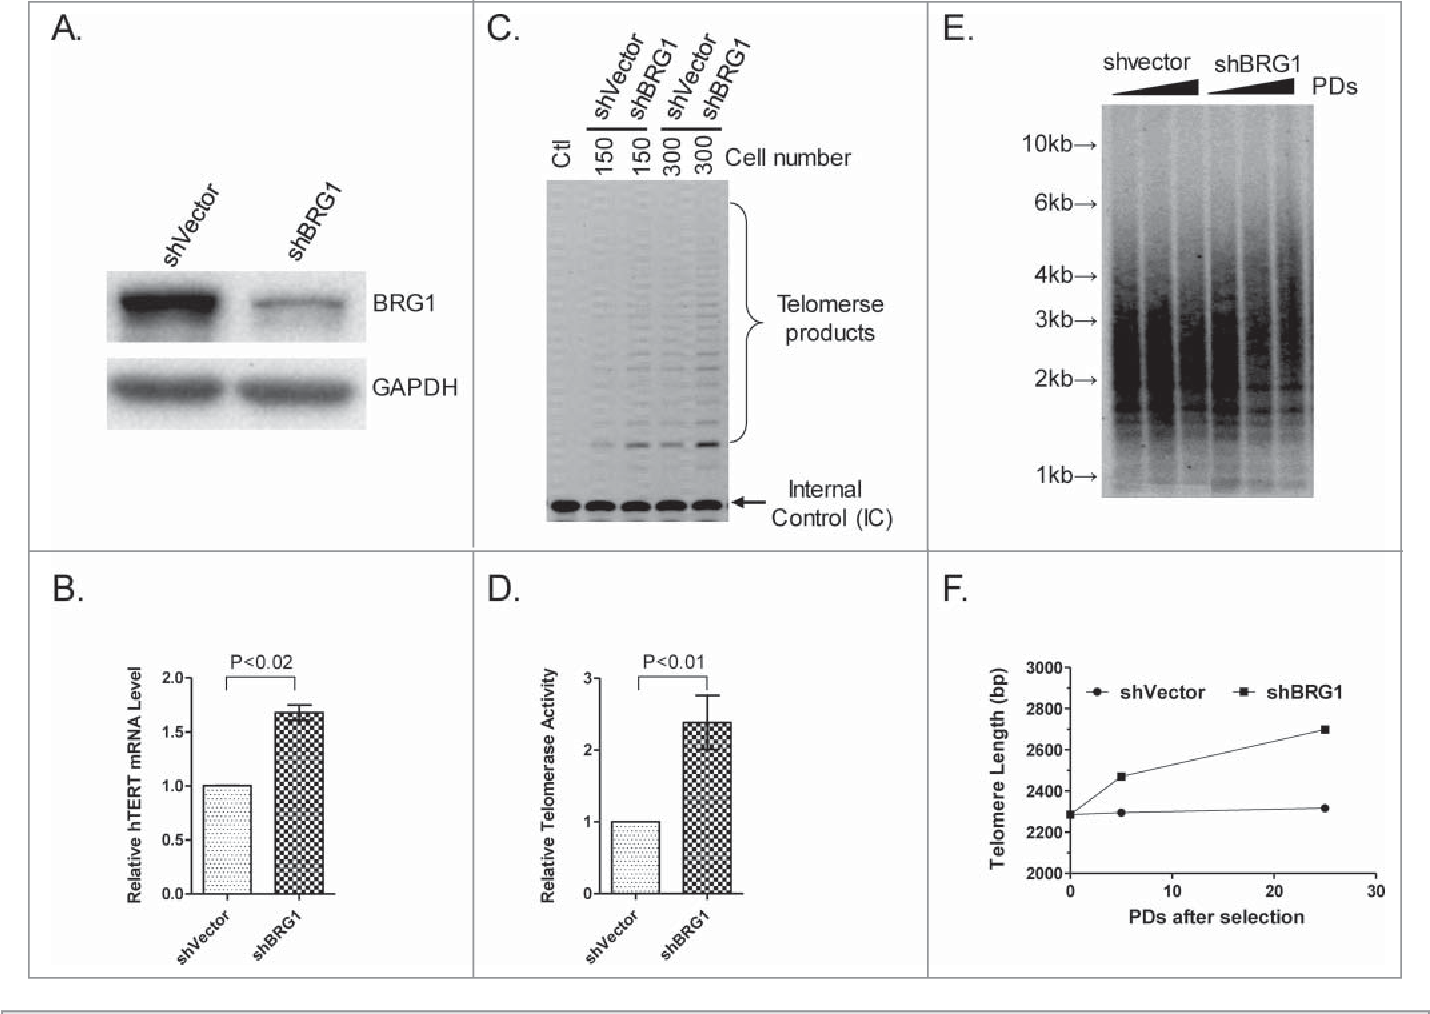 Figure 2. Effect of knockdown of BRG1 on hTERT transcription in HeLa cells. (A) Western blot showing BRG1 protein after BRG1 knockdown by shBRG1. (B) qRT-PCR quantification of hTERT mRNA in BRG1-depleted cells; shVector was used as a control. (C) TRAP assay in BRG1-depleted (shBRG1) HeLa cells; shVector heat- inactivated samples (Ctl) were used as controls. (D) Quantitation of data in (C), Graph shows mean § SD; Three independent experiments were performed. (E) TRF assay was performed in HeLa cells with or without BRG1-depletion; cells were cultured for different PDs (Population Doubling) after selection; ShVector was used as a control. (F) Quantification of data in (E). P values were calculated using the Student's t-test.